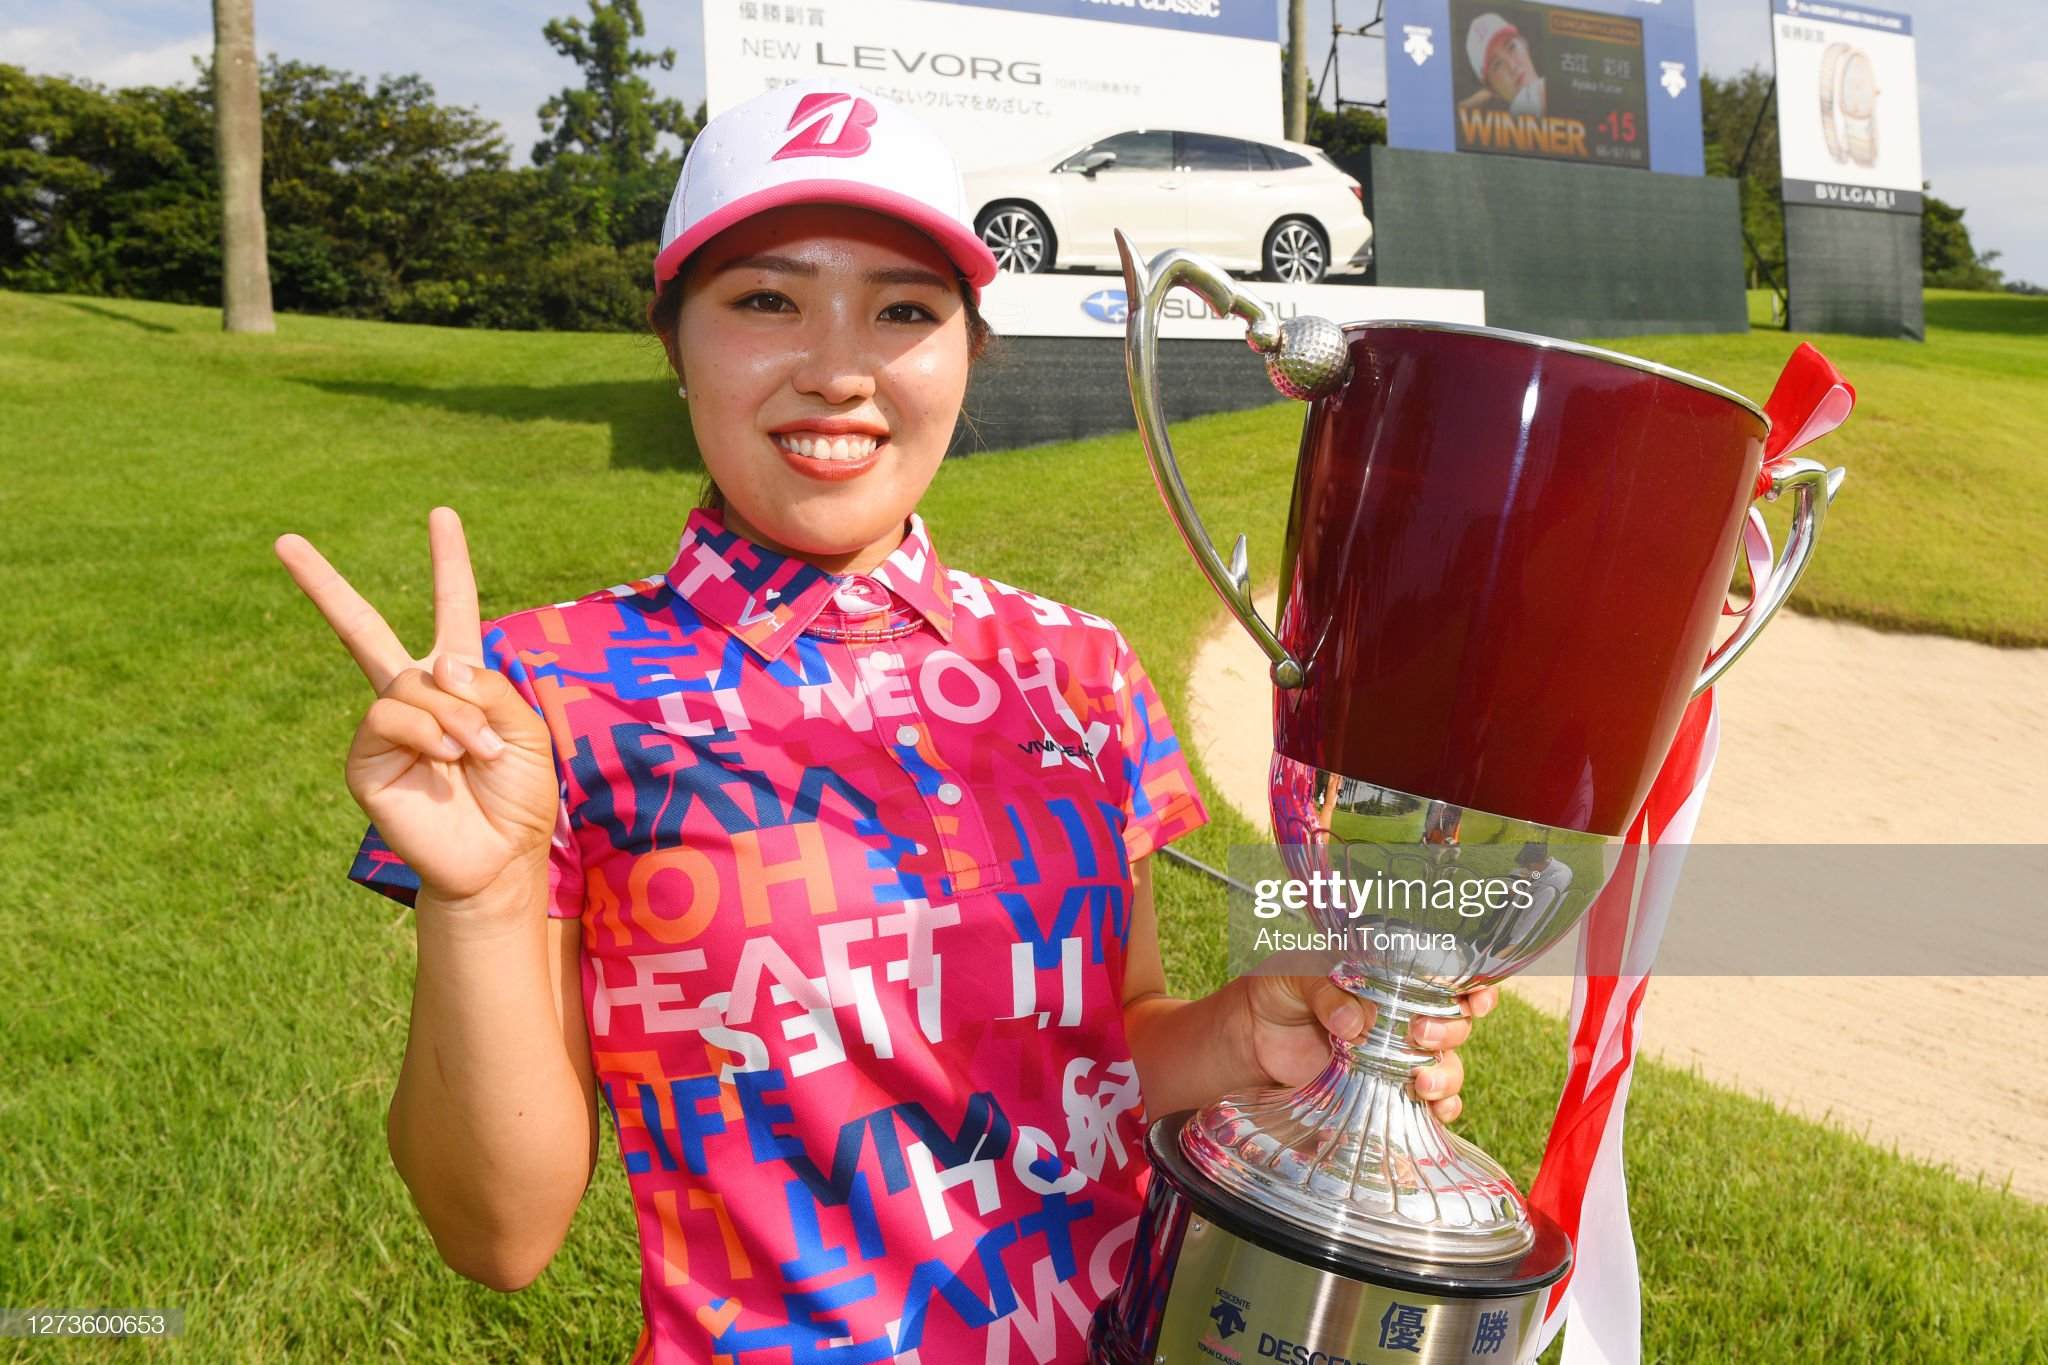 https://media.gettyimages.com/photos/ayaka-furue-of-japan-poses-with-the-trophy-after-winning-the-the-picture-id1273600653?s=2048x2048